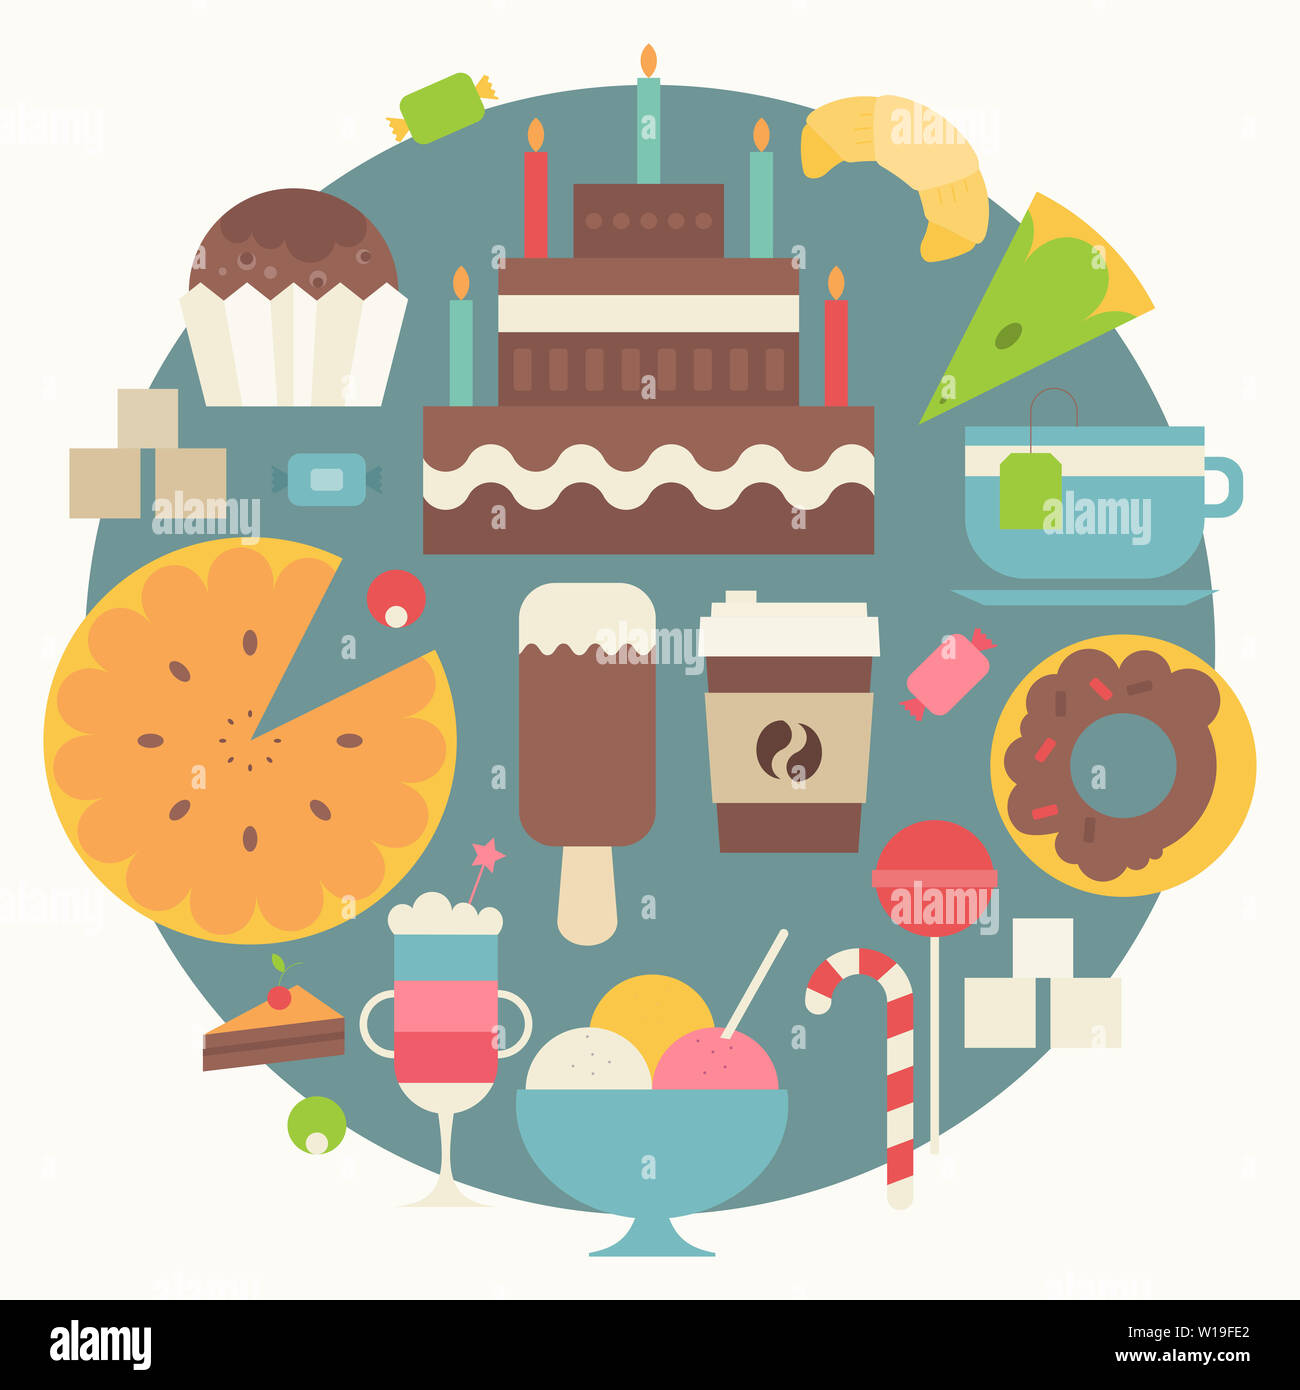 Collection of Sweets in Flat Style. Sweets, Cupcake, Donut, Ice Cream, Croissant, Big Cake, Coffee on Blue Circle  Background. Vector Illustration. Re Stock Photo